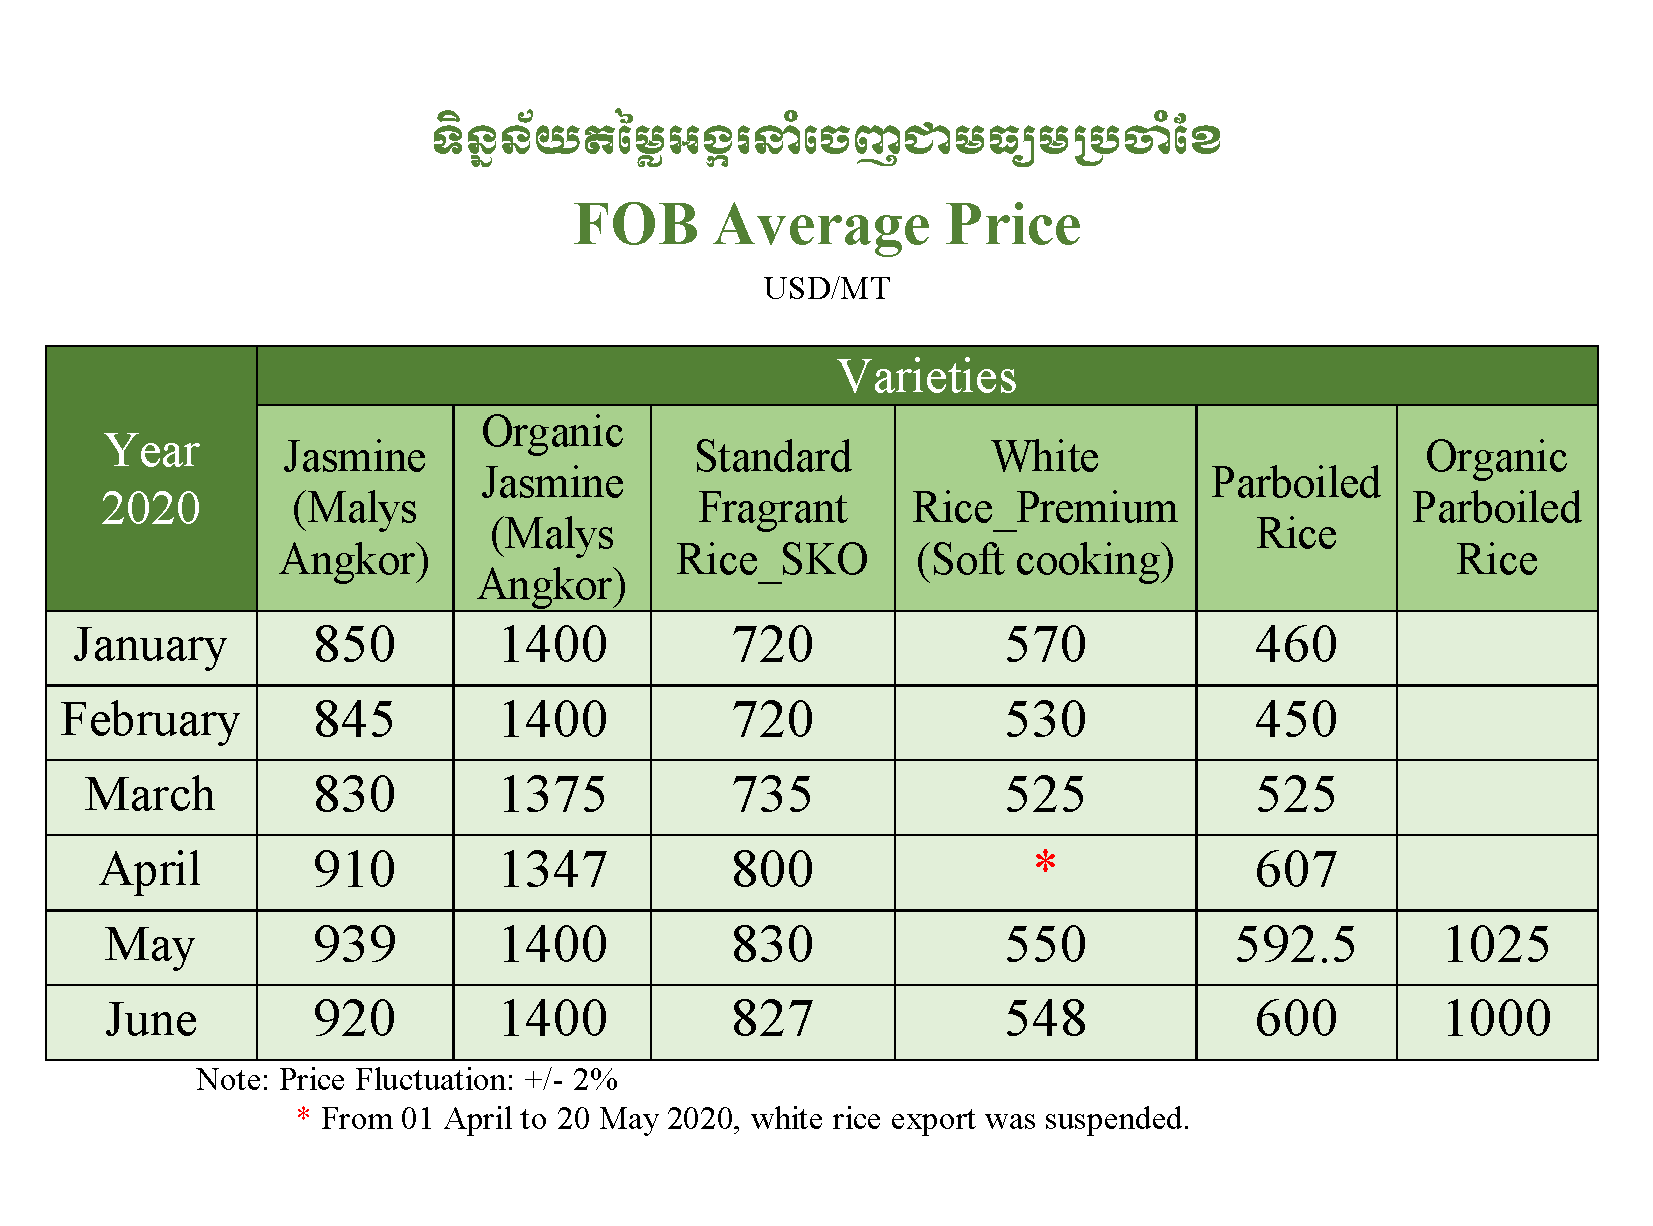 FOB Price Average